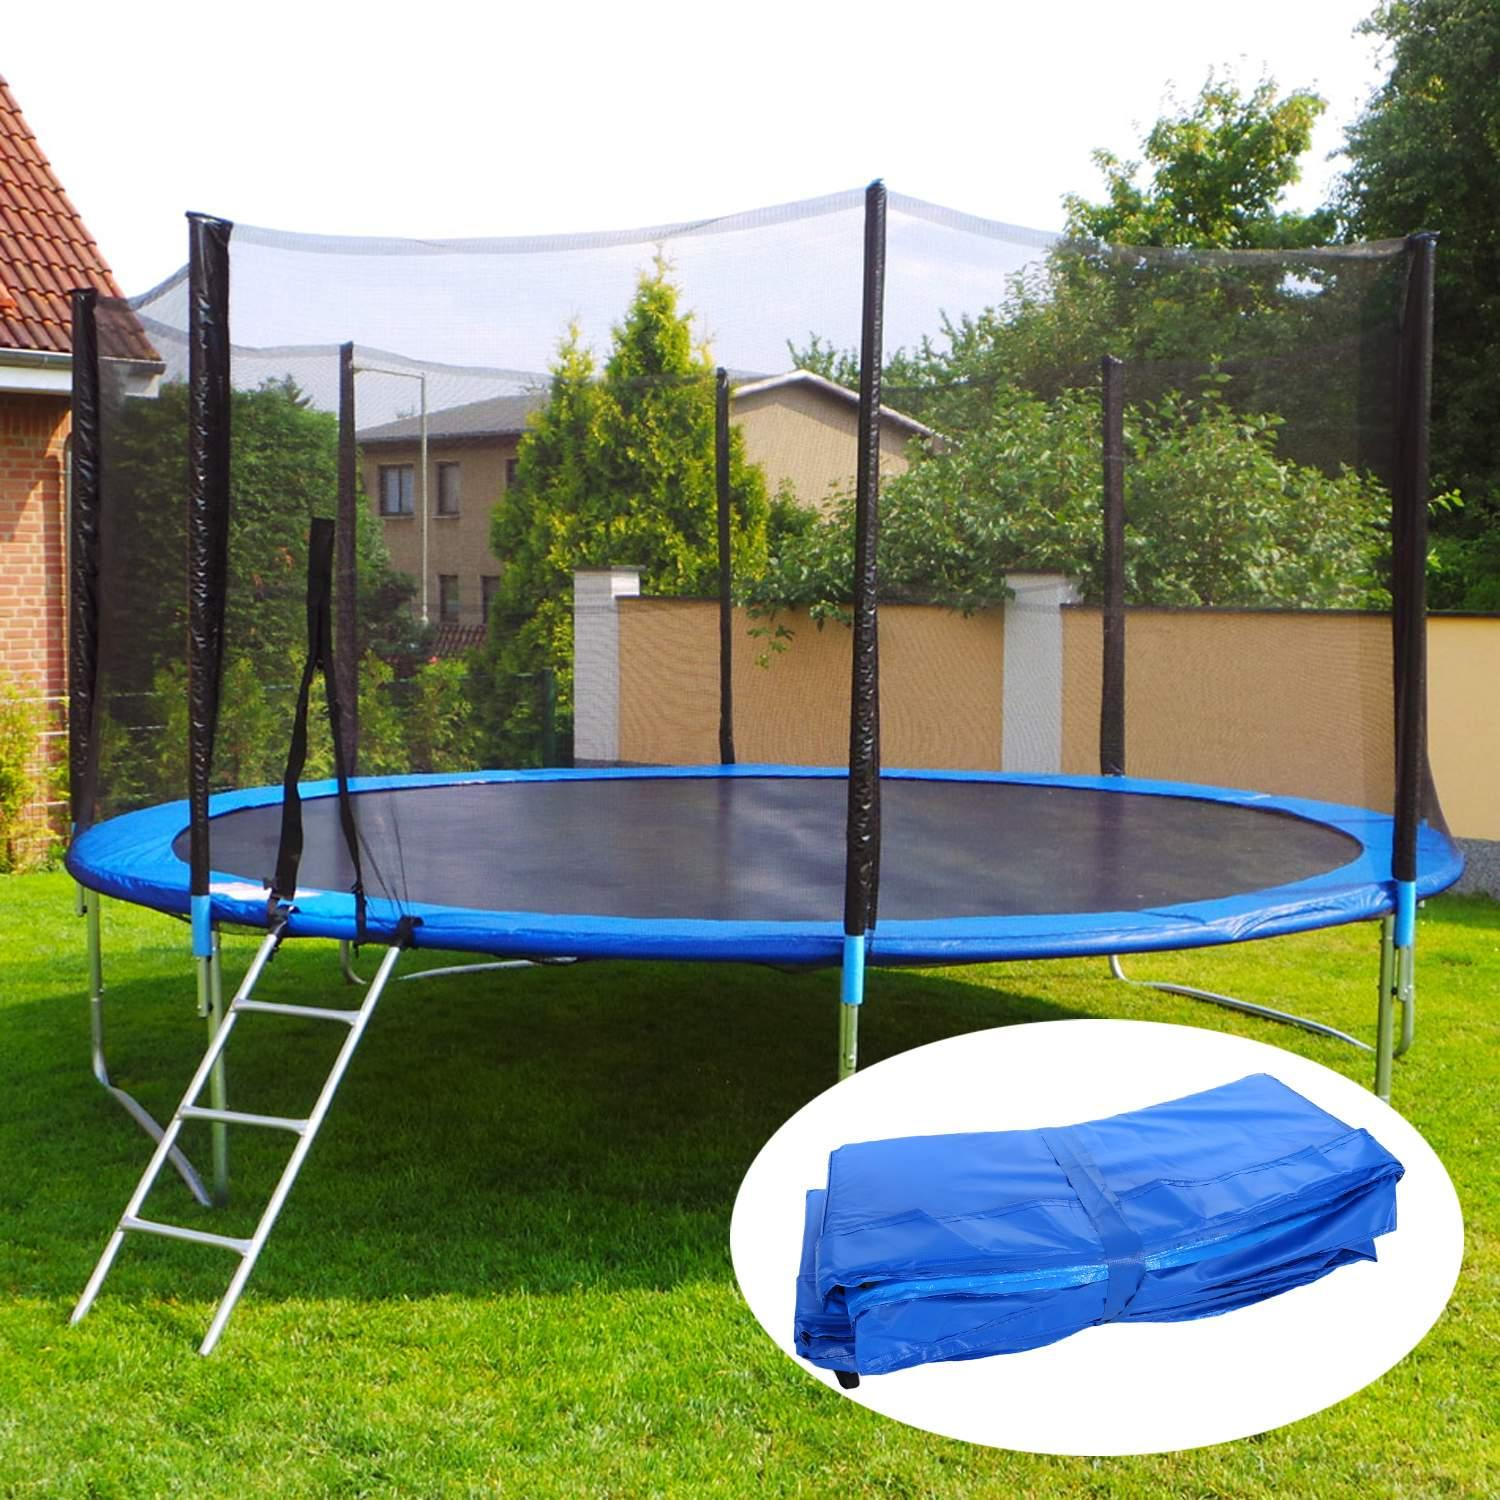 12ft Trampoline 15mm Safety Pad Spring Round Frame Pad